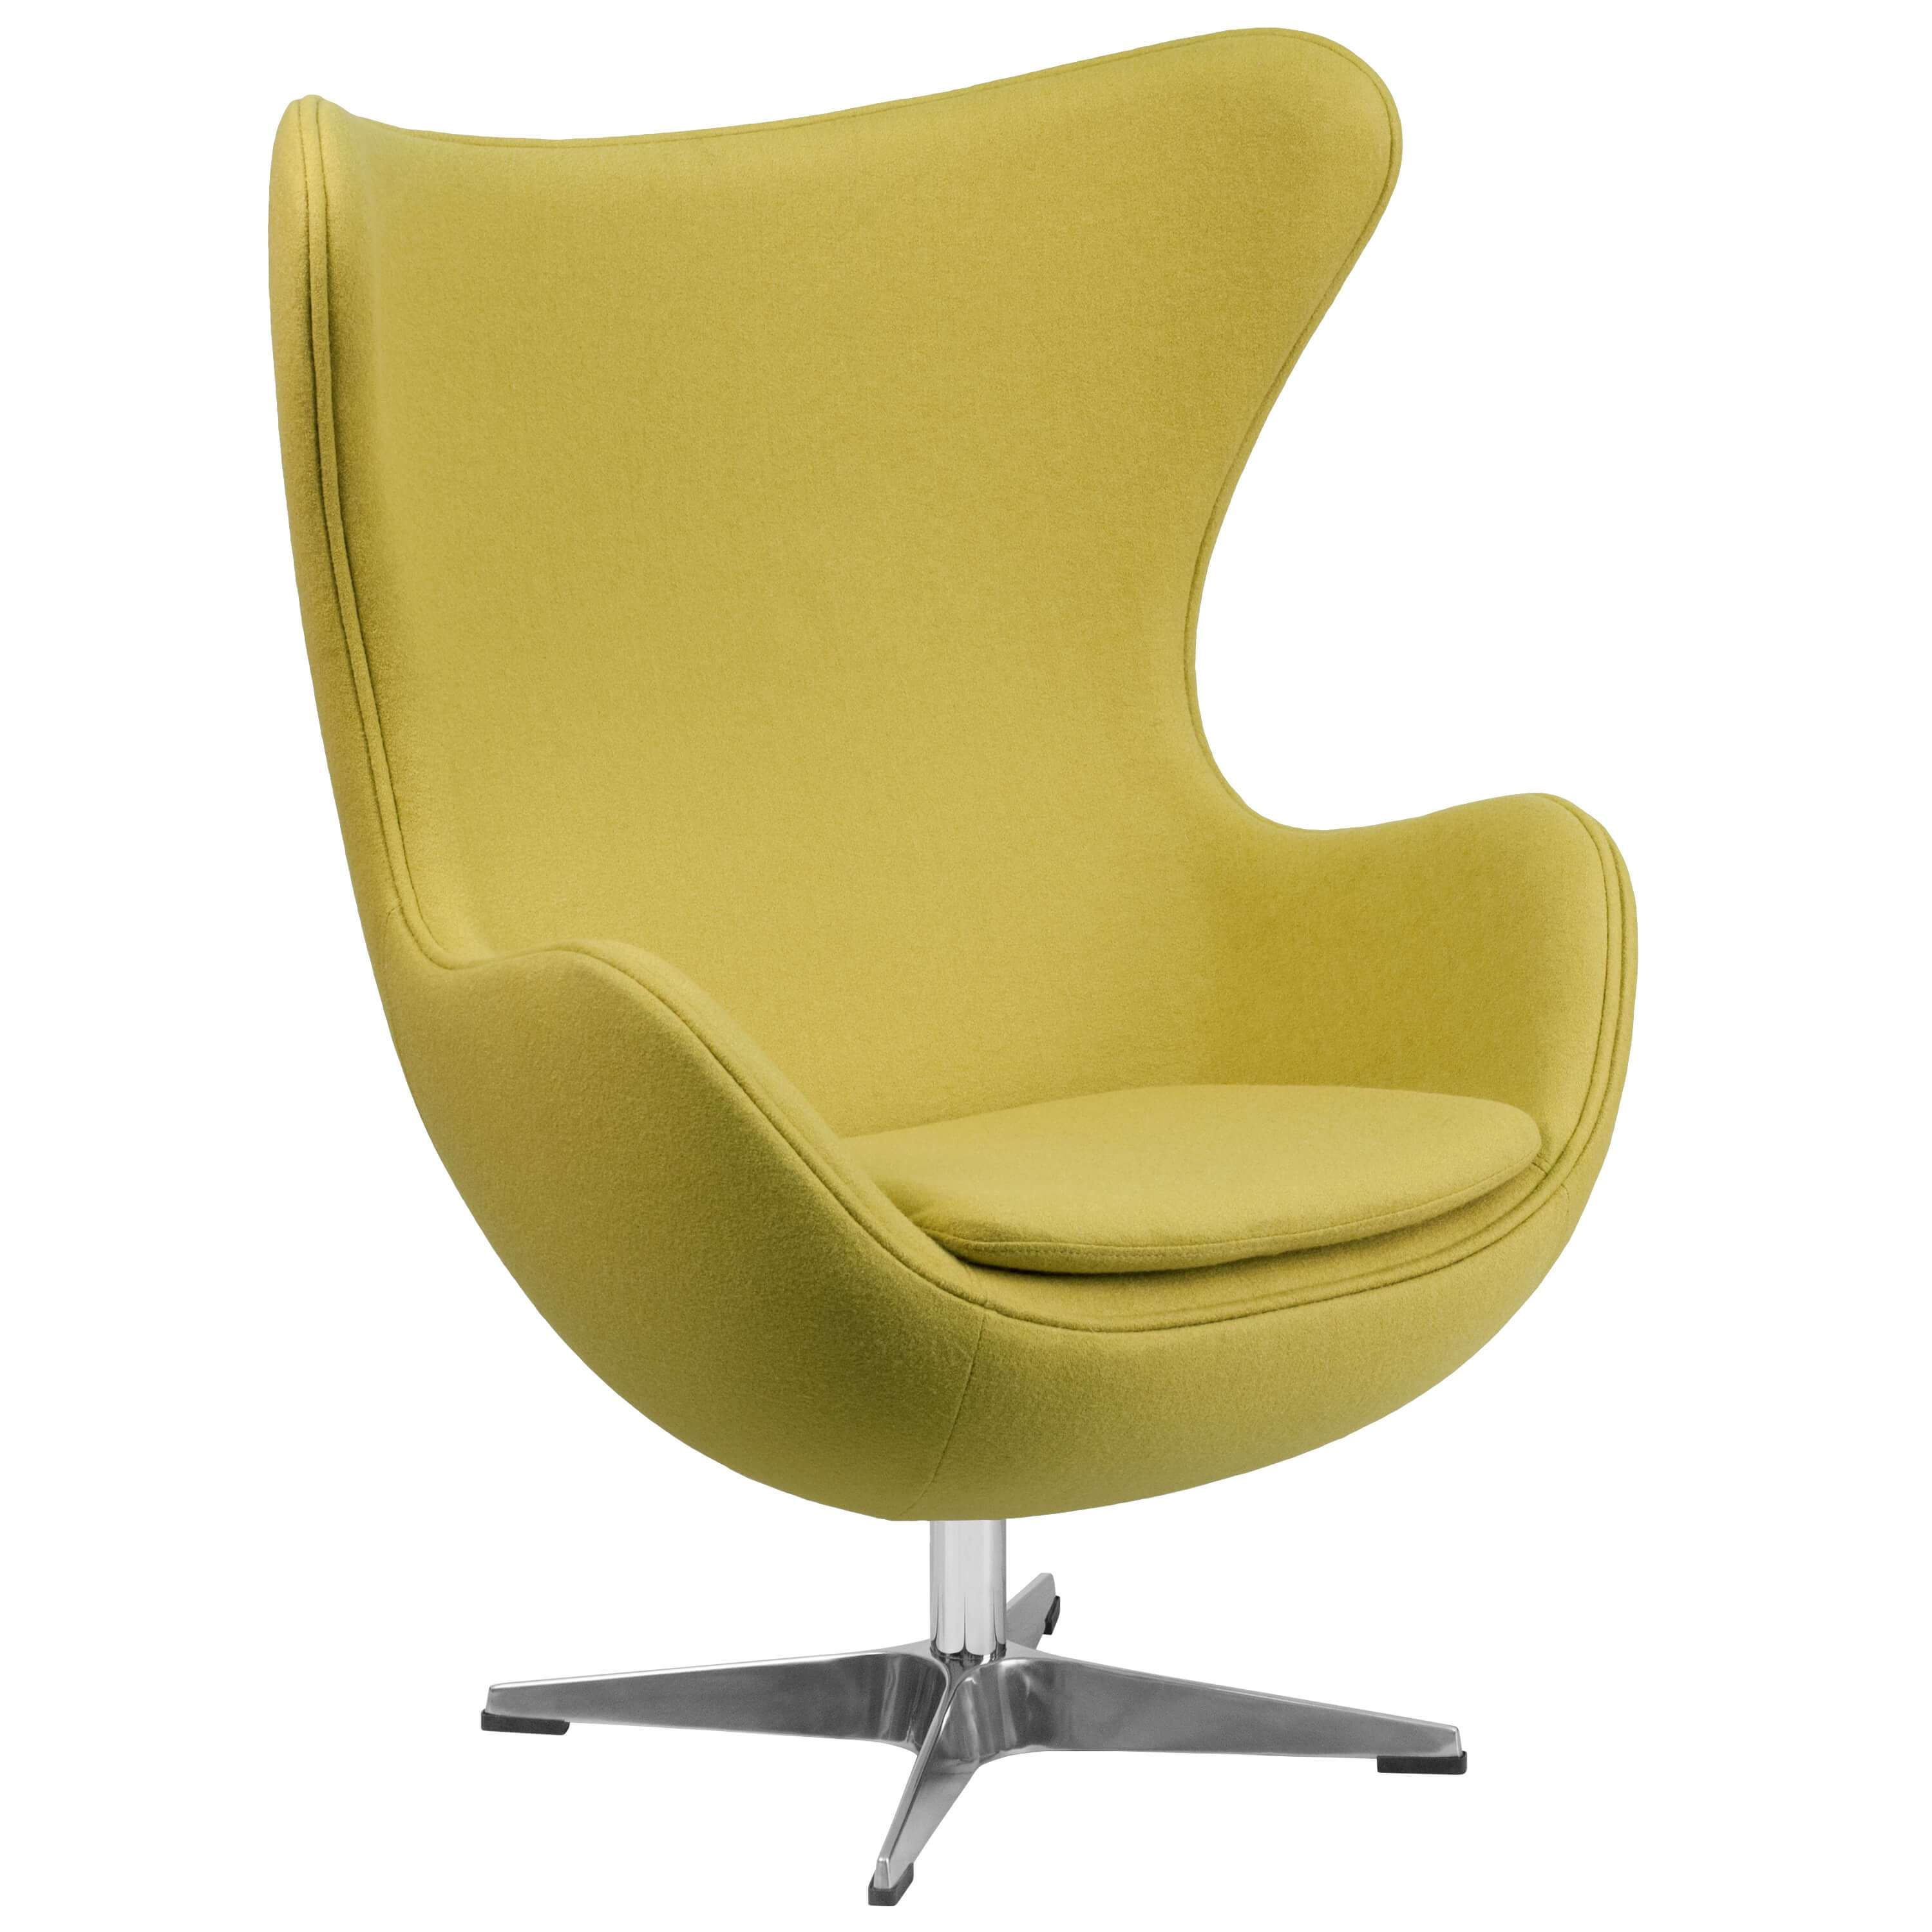 Office lounge chairs CUB ZB 20 GG ALF